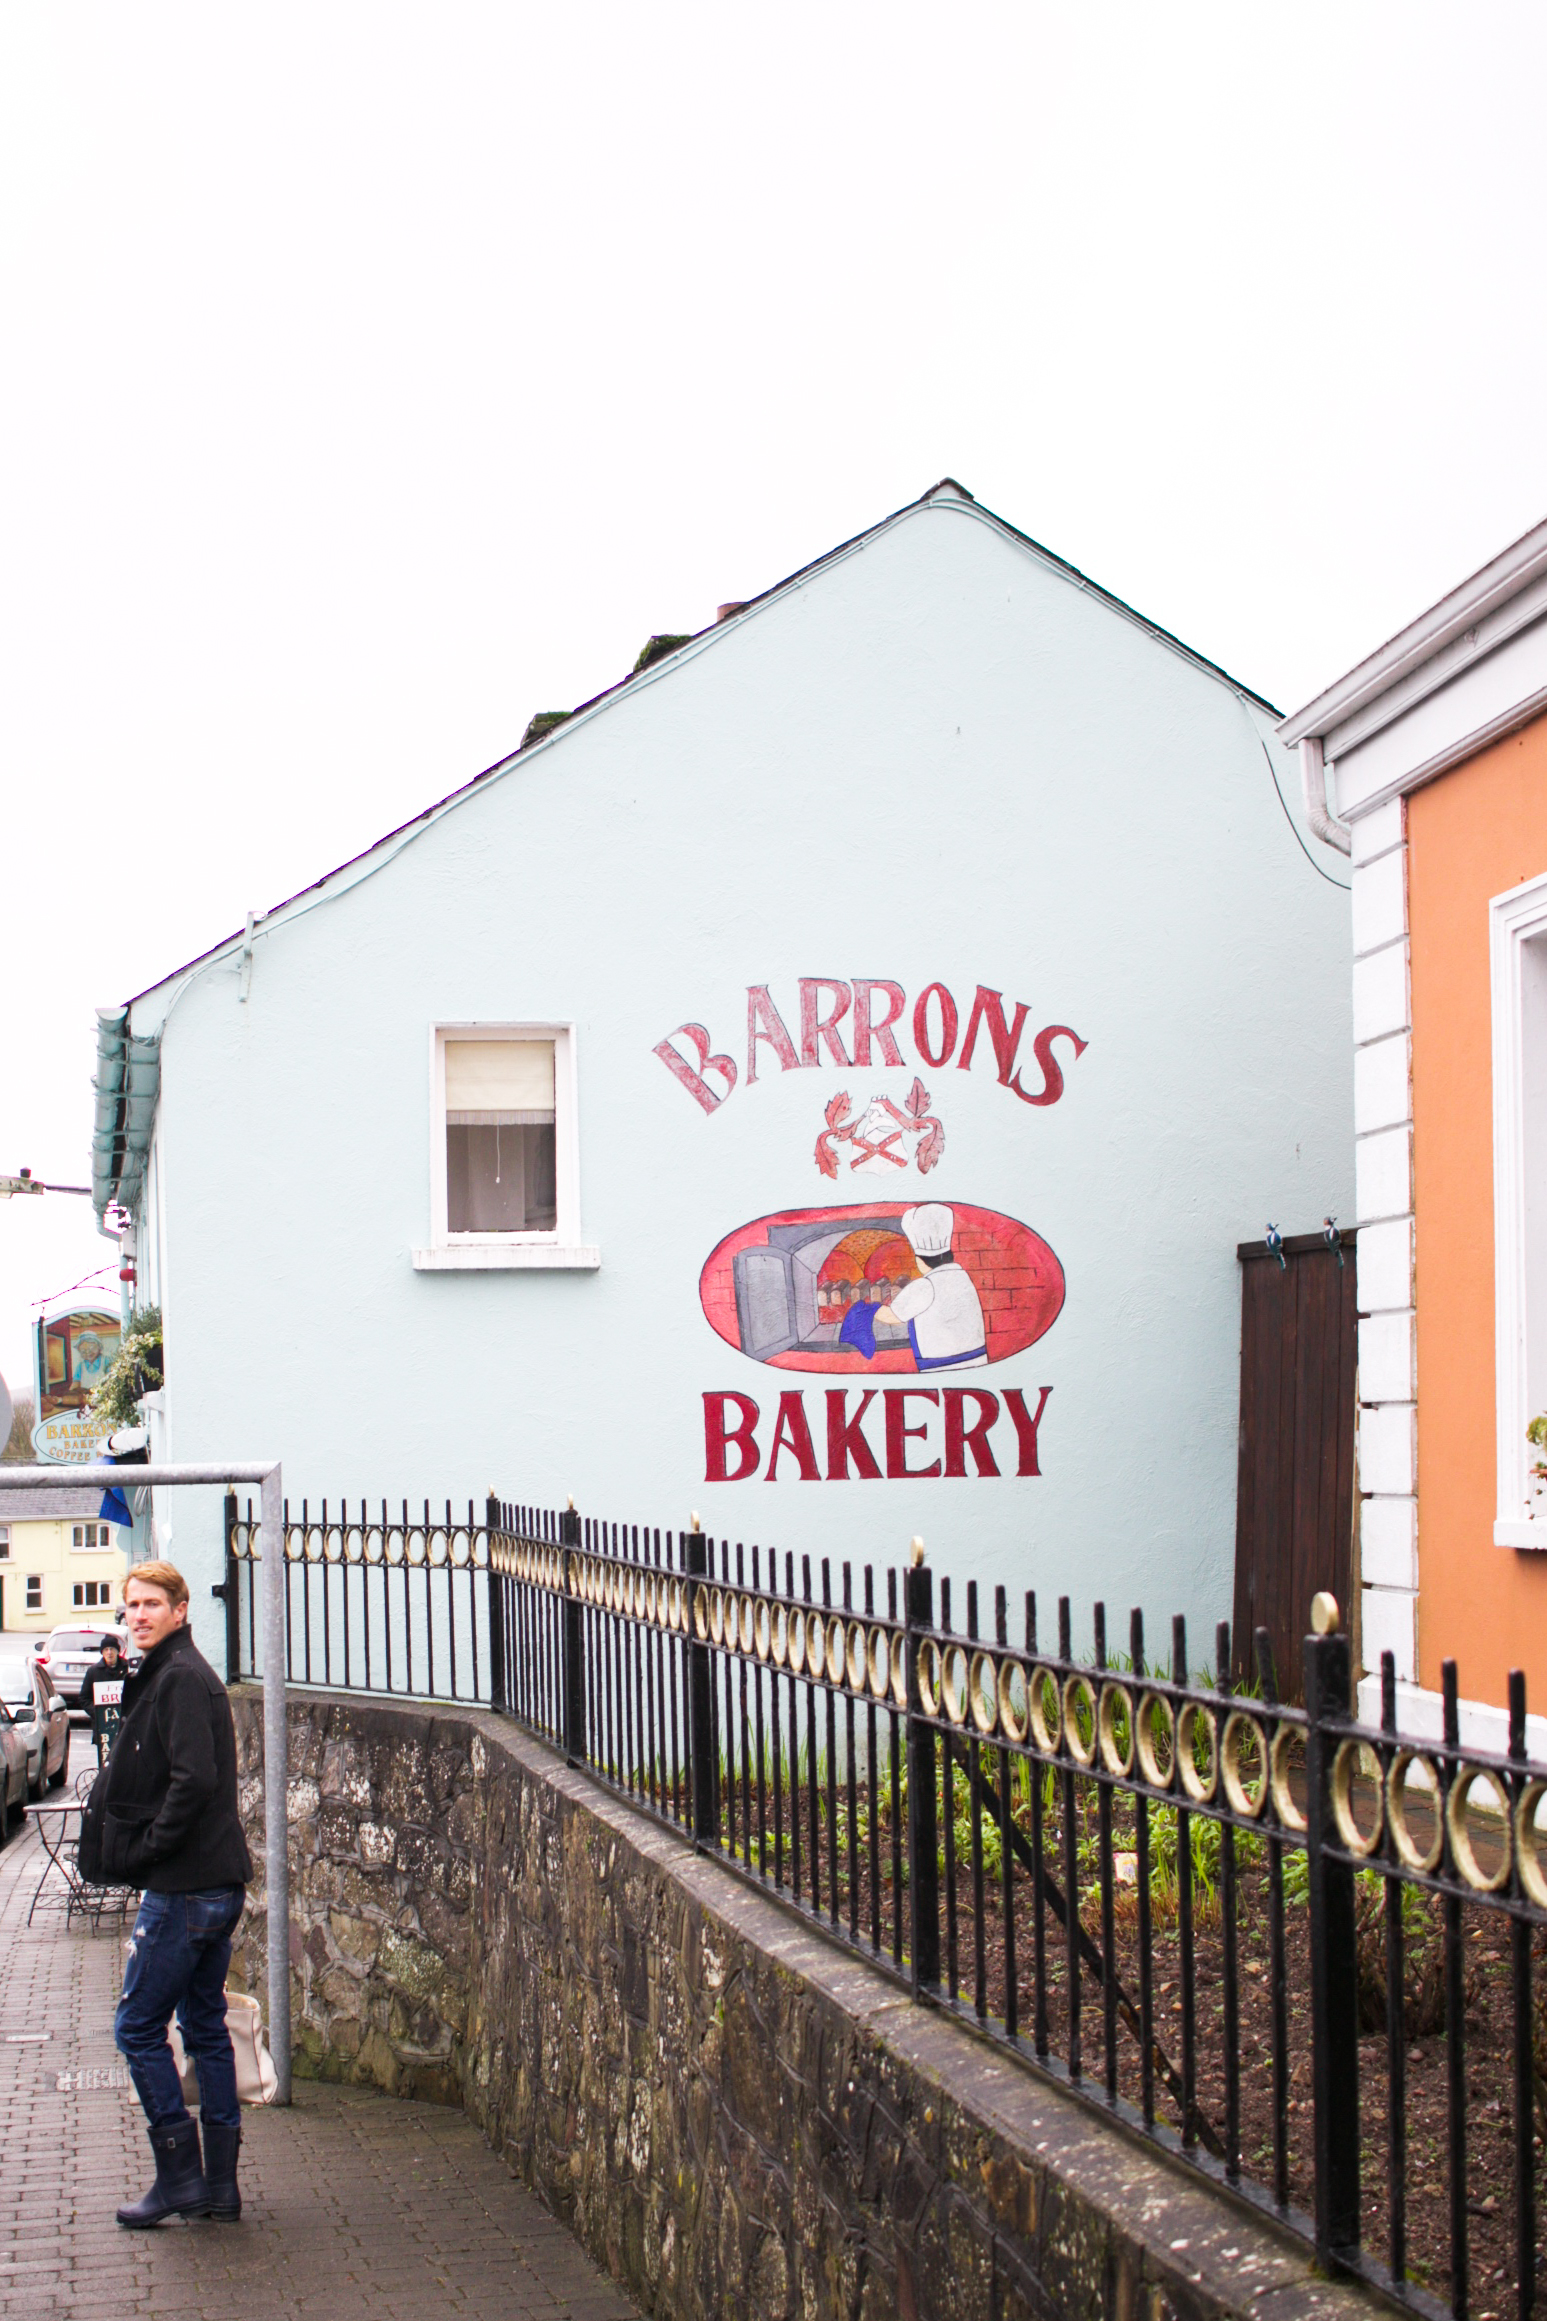 I discovered BArron's Bakery on a google/pinterest search for the best food and baked things in ireland! We highly RECOMMEND it. Delicious bread and scones, and delightful tea!